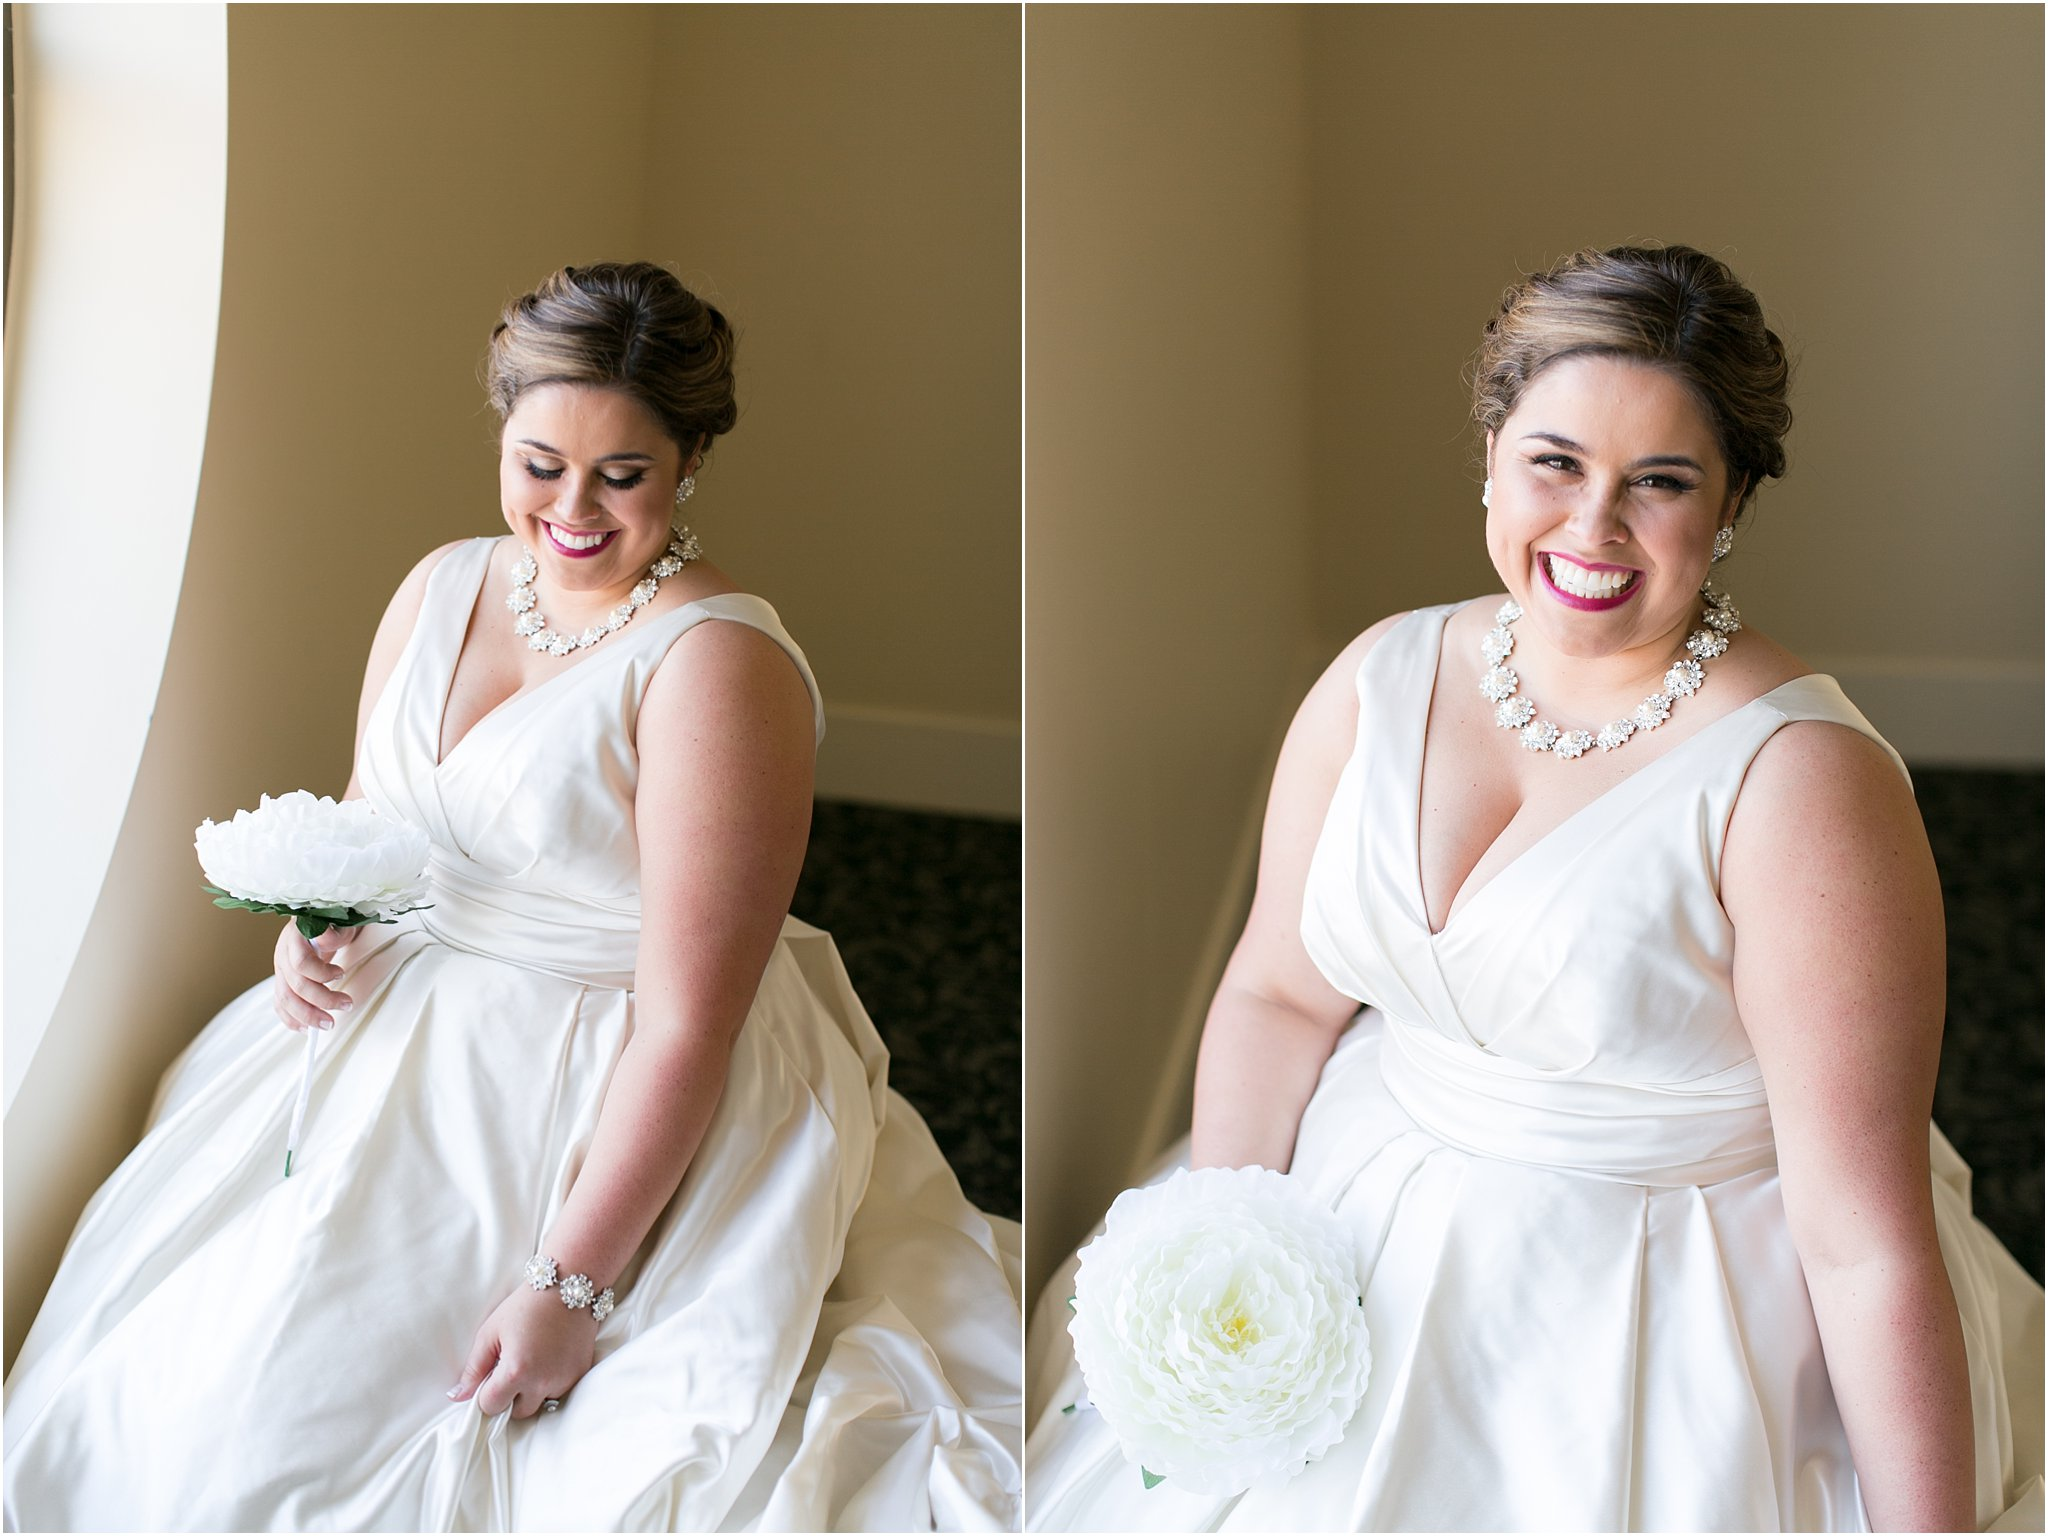 va_jessica_ryan_photography_virginia_wedding_norfolk_harrison_opera_house_norfolk_arts_district_portraits_3779